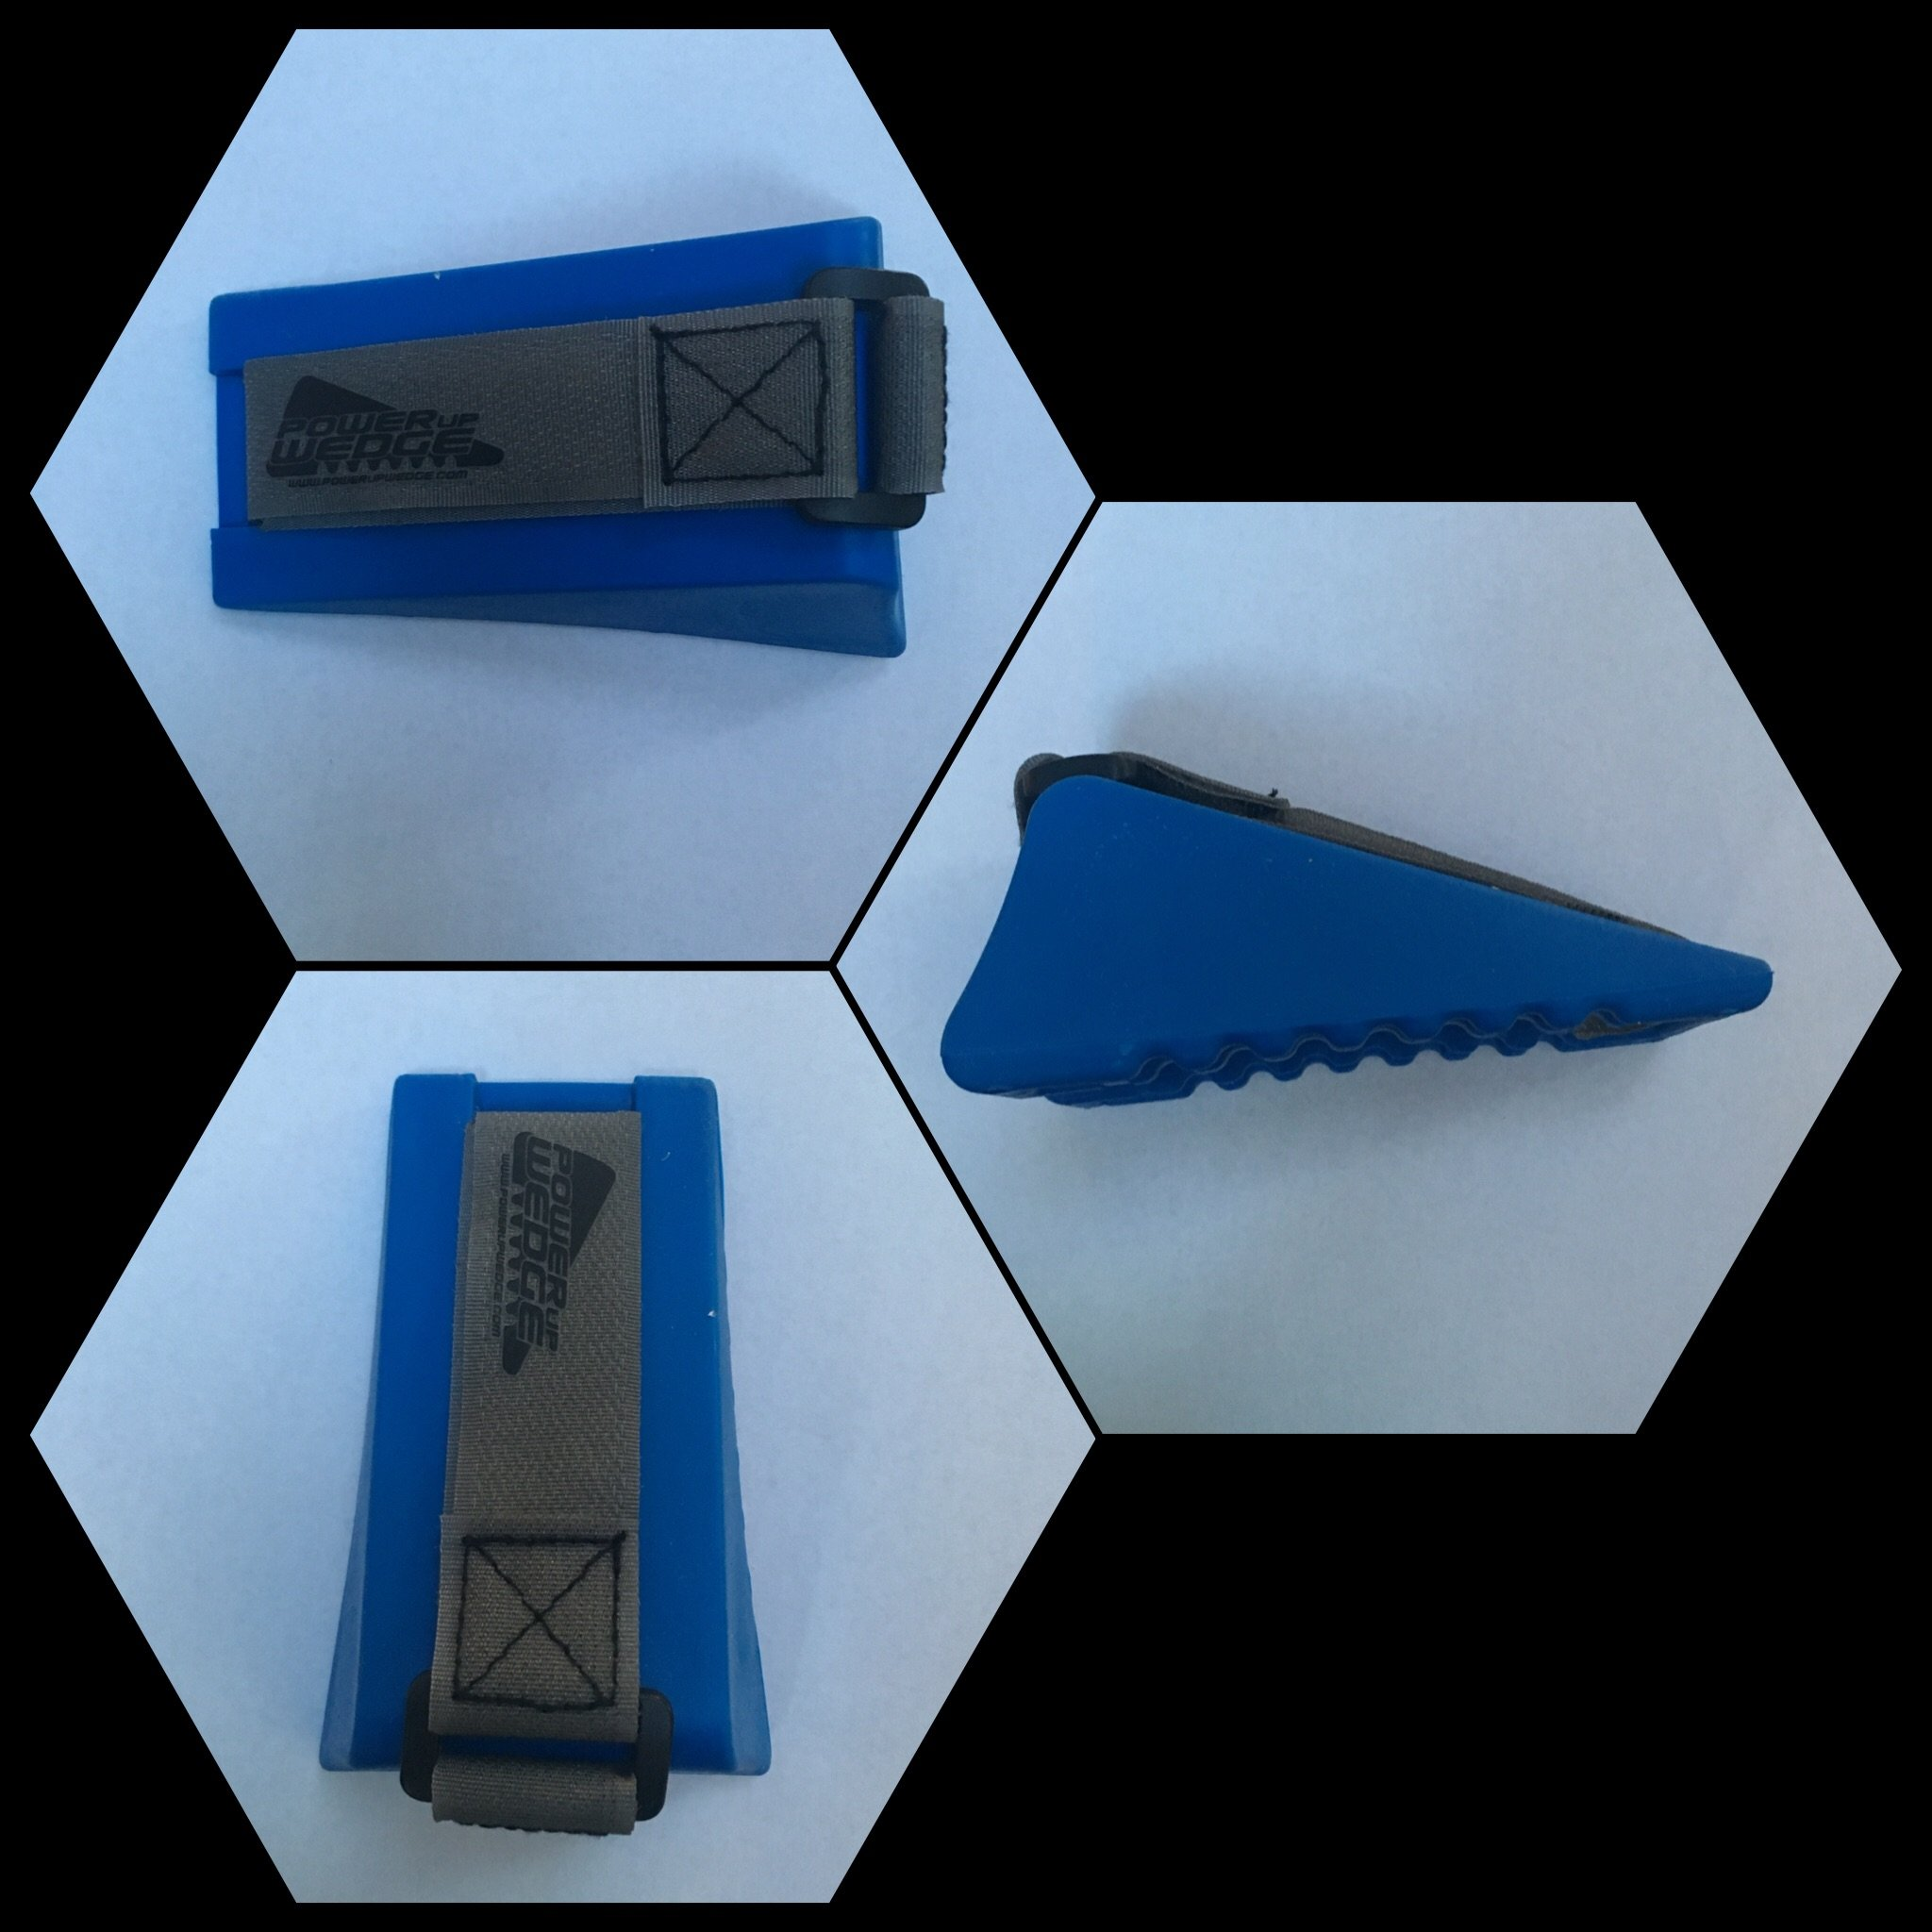 Power Up Wedge Hitting Training Aid Engage Your Lower Half Like Never Before (Royal Blue) by Power Up Wedge